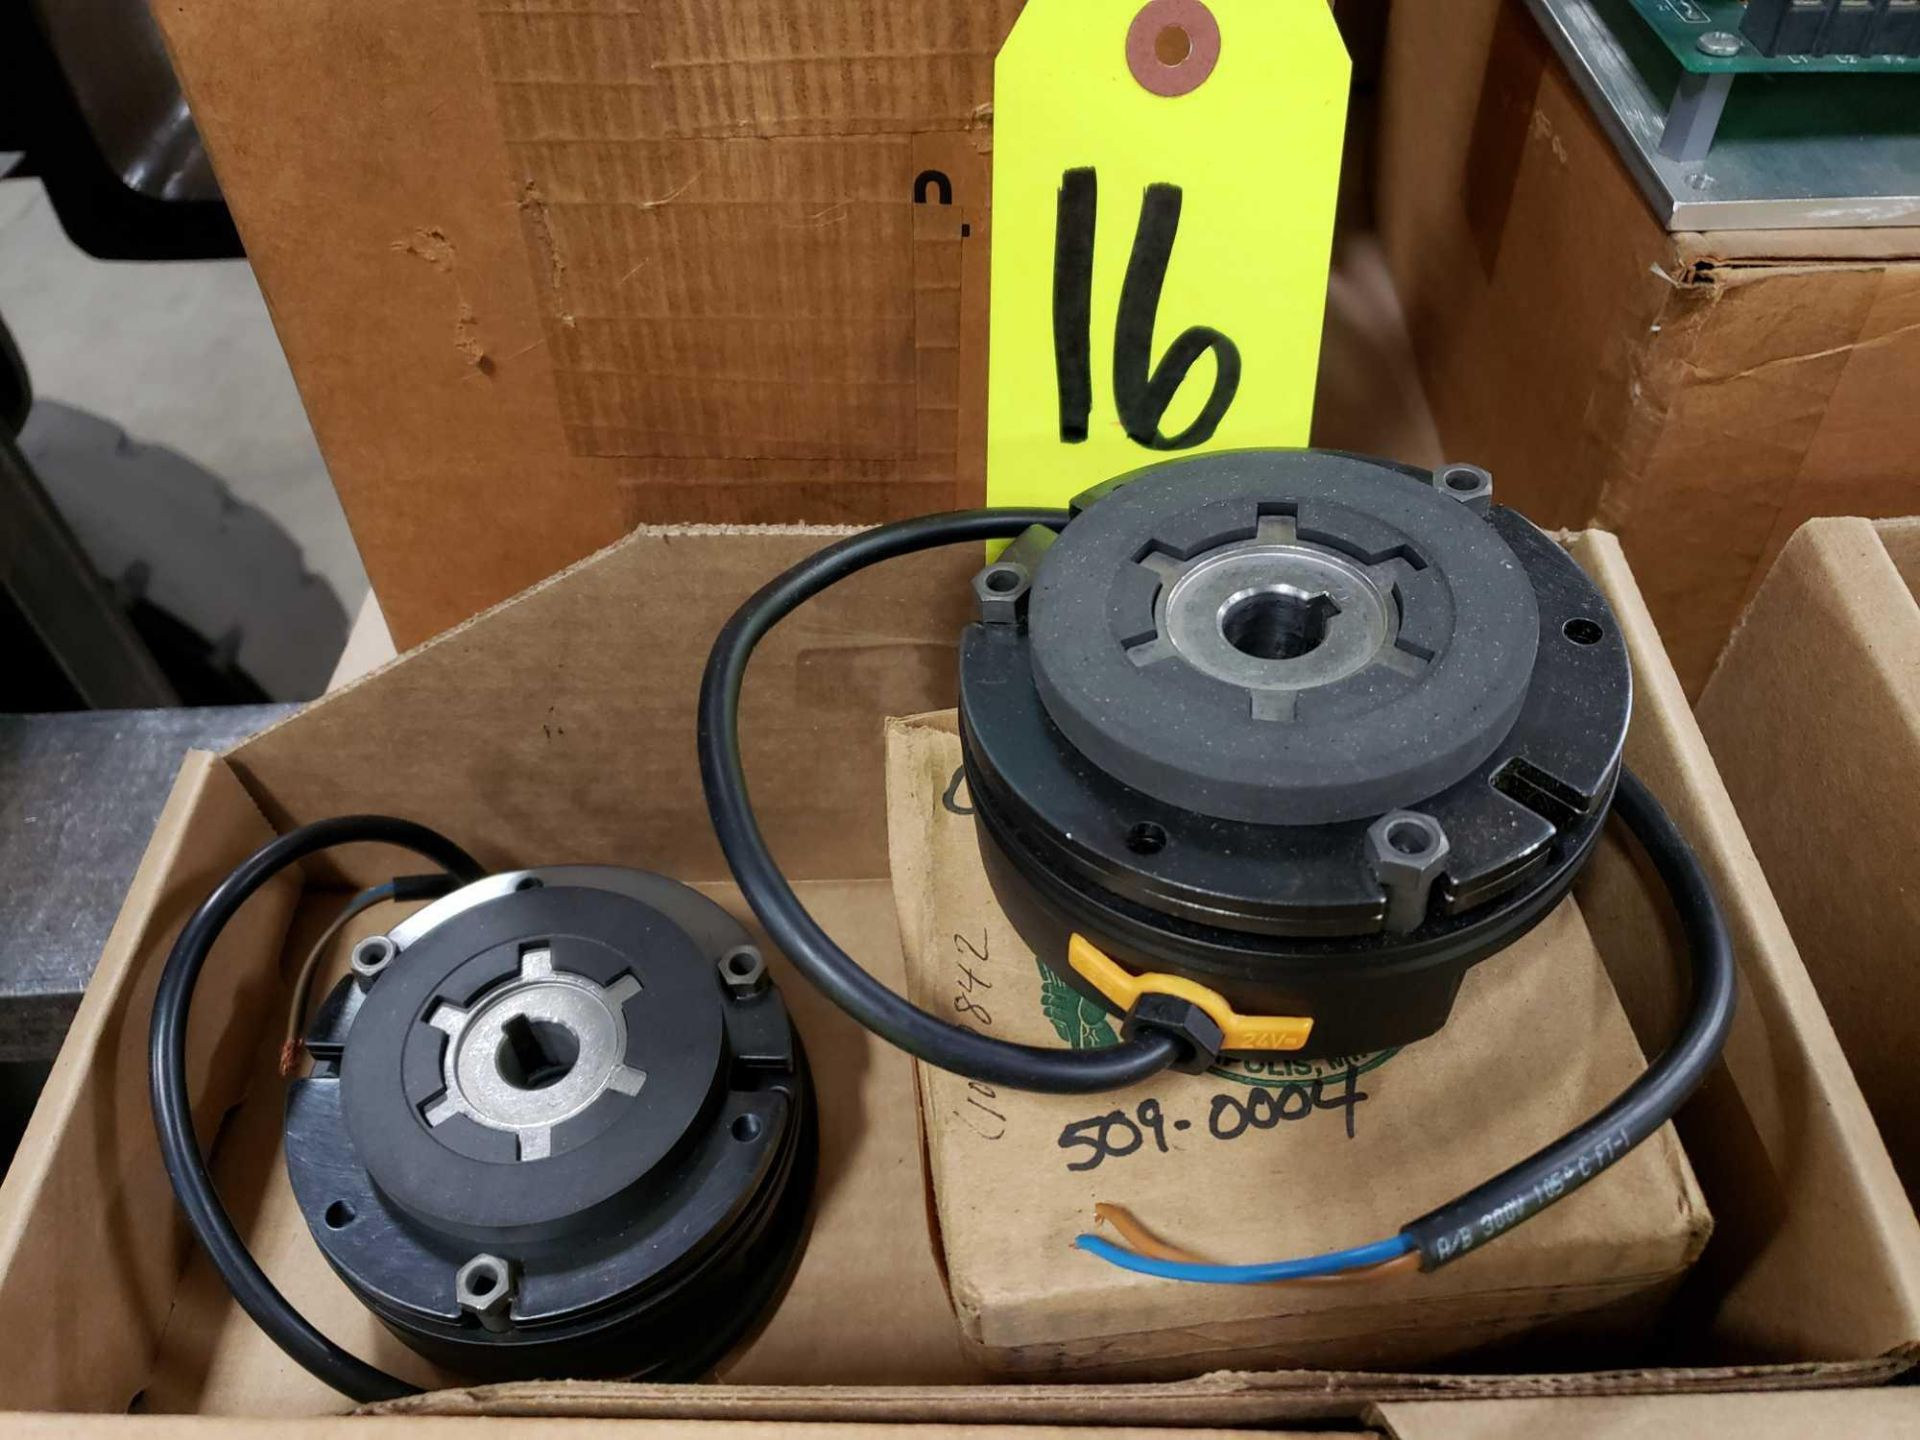 Lot 16 - Qty 2 - Clutch brakes as pictured. New.